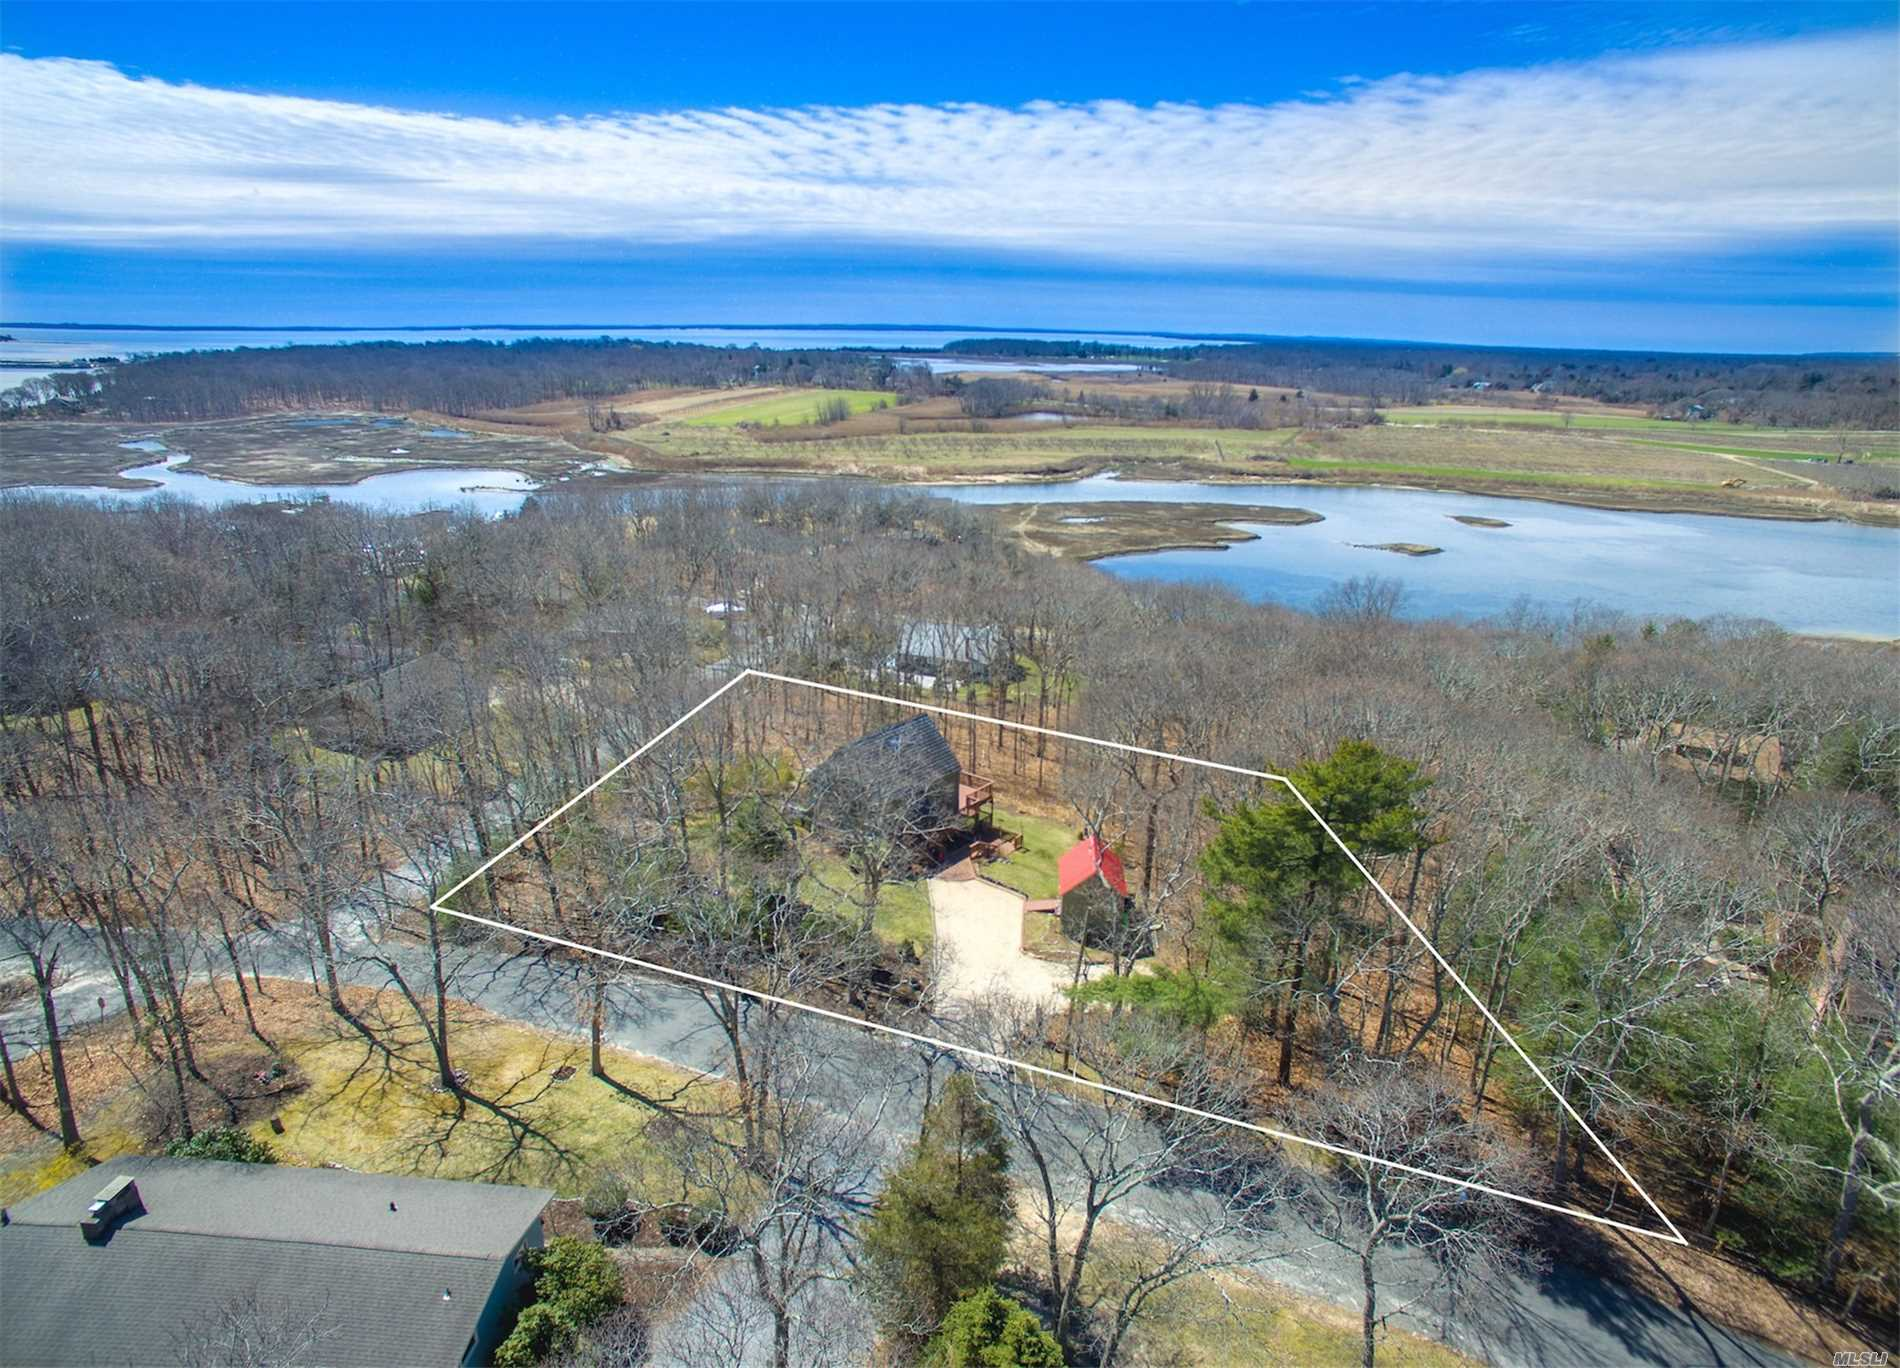 Amazing Fleets Neck Opportunity w/ Elevated Water Views Of Wickham Creek Rests This Corner Lot Home. Very Private Yard w/ Room For A Pool. Lower Deck Off Basement w/ Outdoor Shower & Elevated Deck Off Of Main Living Area. All Post & Beam On Interior, 1/2 Bath On Main Level, 2 Large Bedrooms Upstairs Along w/ Full Bath. Walk To Beach, Dave Allison Park & Commercial Marina. You Have To See This One In Person. Special Home, Property & Location!